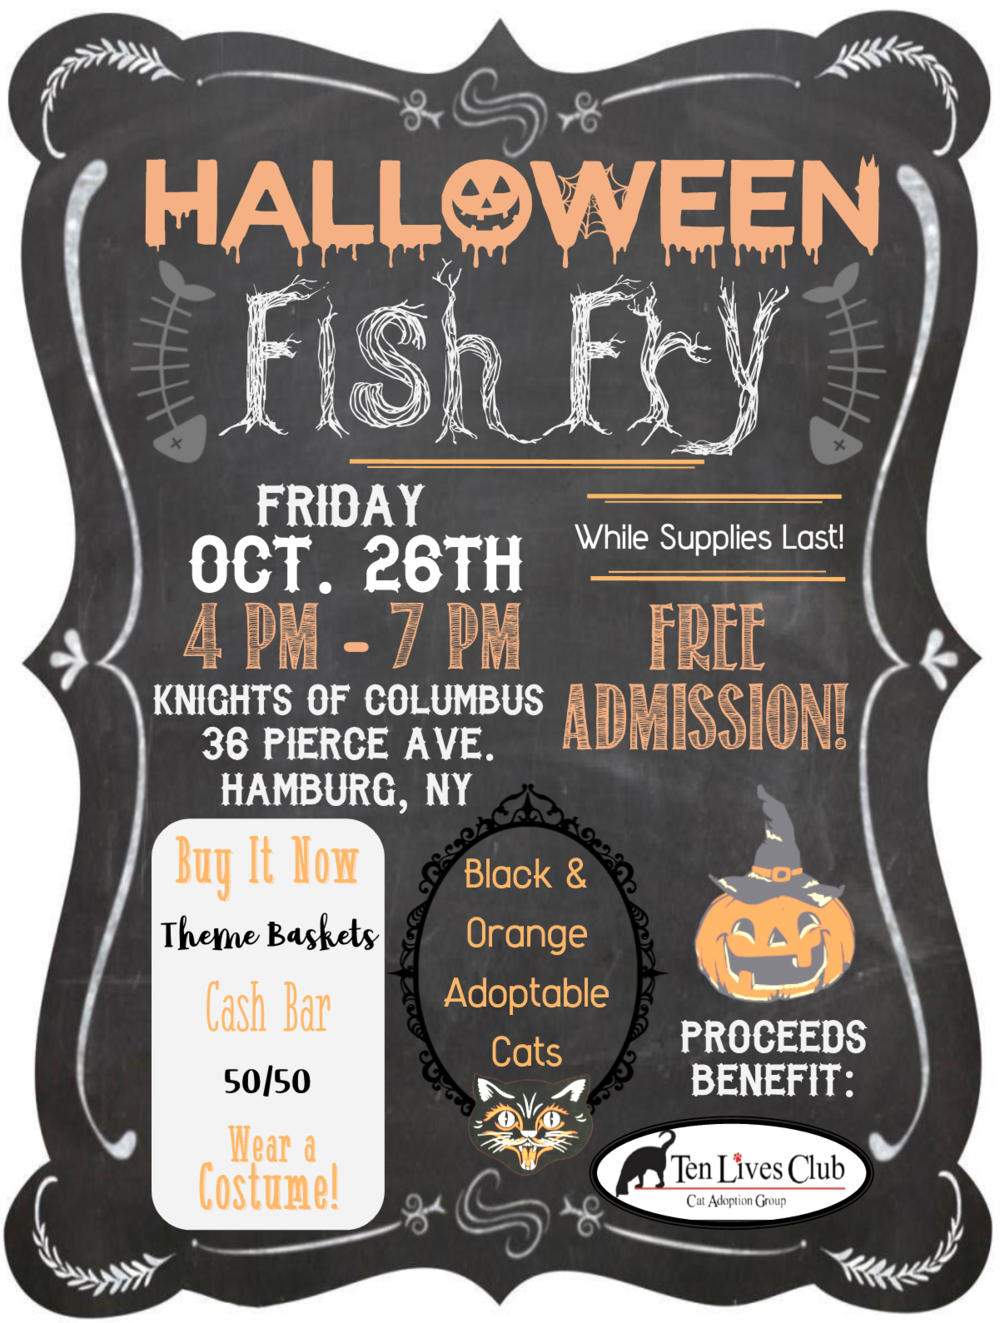 Halloween Fish Fry Flyer.png